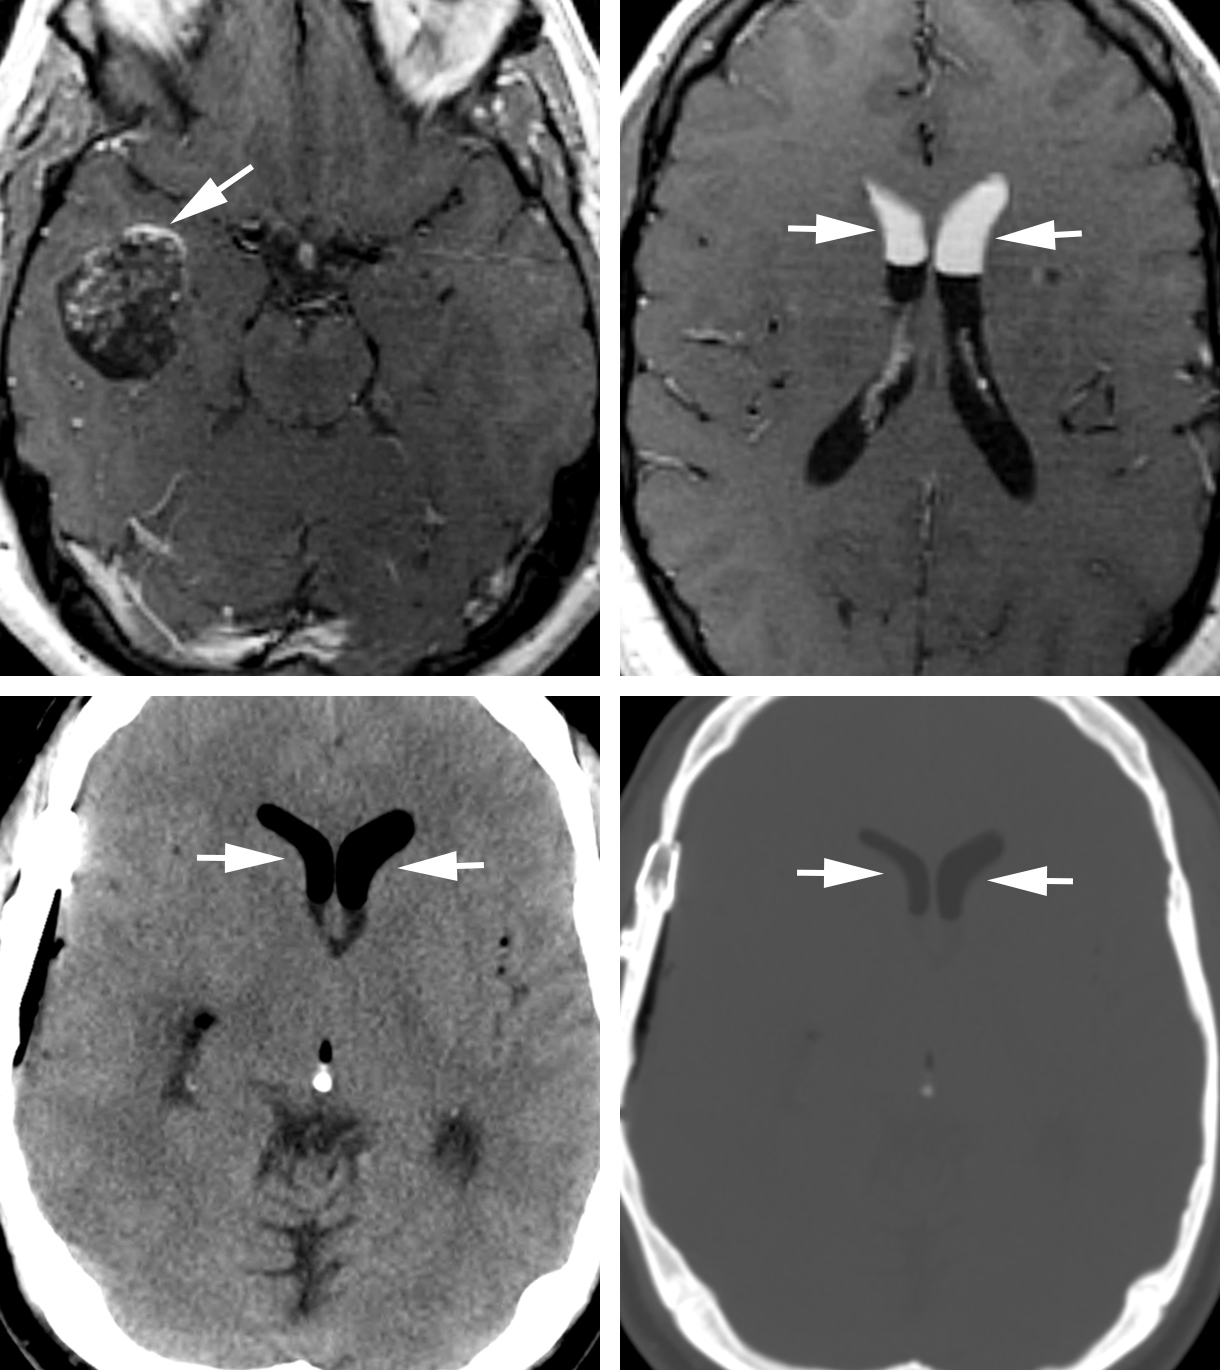 Figure 1: 34-year-old man presenting with dizziness and migraine headaches. (Top Left) Contrast-enhanced T1-weighted image demonstrates a heterogeneous-appearing mass in the right temporal lobe demonstrating areas of hyperintensity both internally and in the periphery (arrow). These areas were also bright before the administration of contrast, implying blood products or fat. (Top Right) The similarly bright material layering nondependently in the frontal horns of the lateral ventricles (arrows) represents fatty material (sebum) due to rupture of the cyst/tumor. Postoperative head CT (bottom left) also demonstrates this fat-density material in the frontal horns (arrows) that can be easily mistaken for postoperative pneumocephalus unless window/level adjustments are properly made and evaluated (bottom right, arrows).